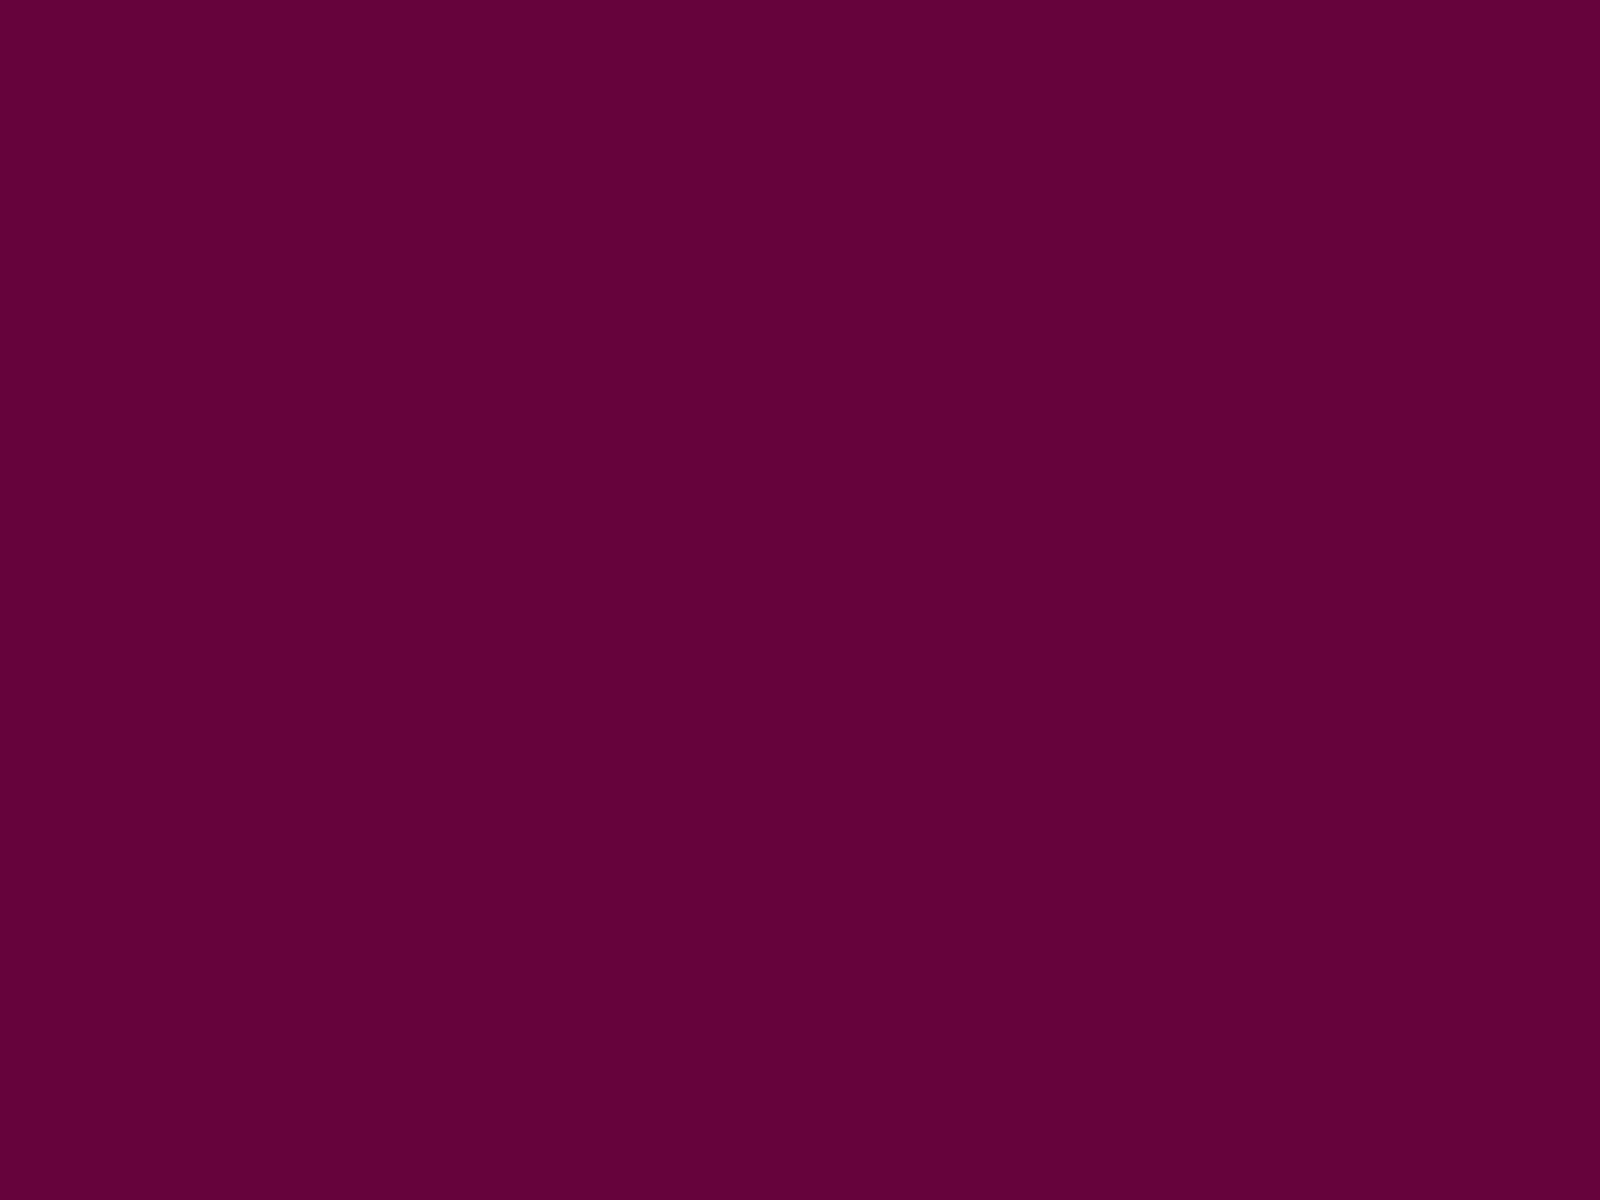 1600x1200 Imperial Purple Solid Color Background